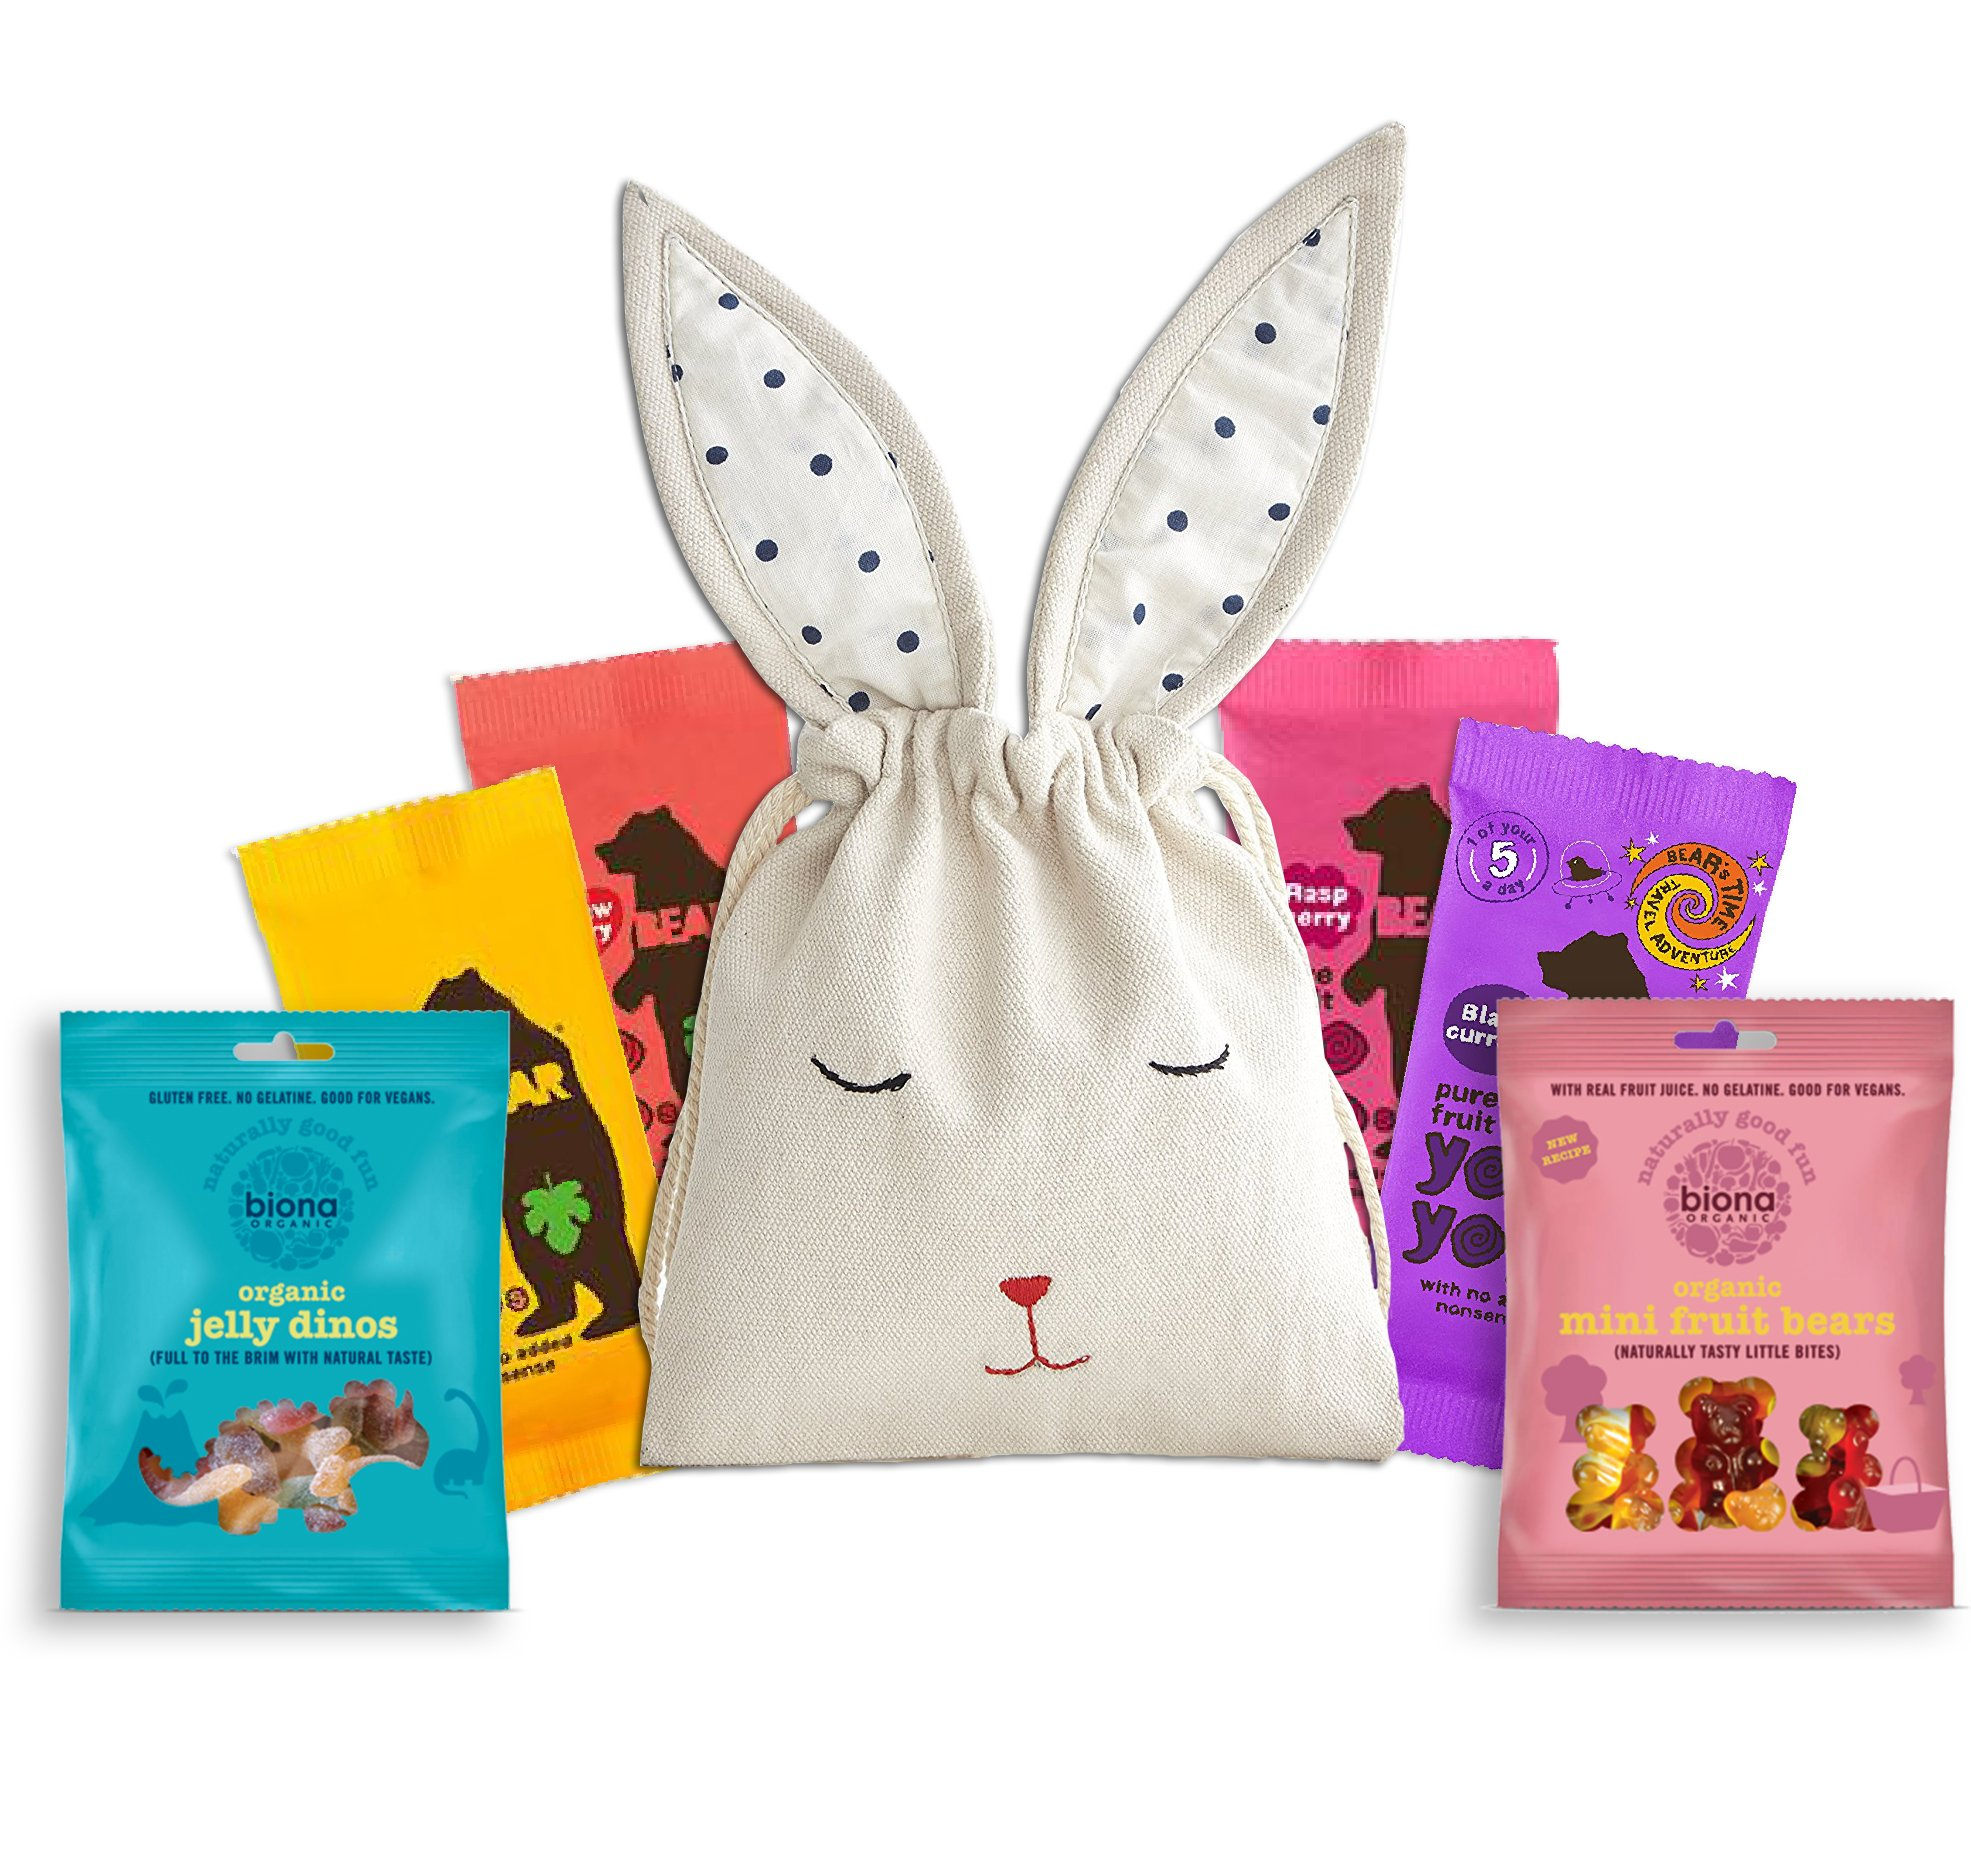 Bear Fruit Yoyo Healthy Snack 5 pieces by The Yummy Palette | vegan kids hamper vegan sweets healthy snacks in cute Hand embroidered Bunny Bag by The Yummy Palette